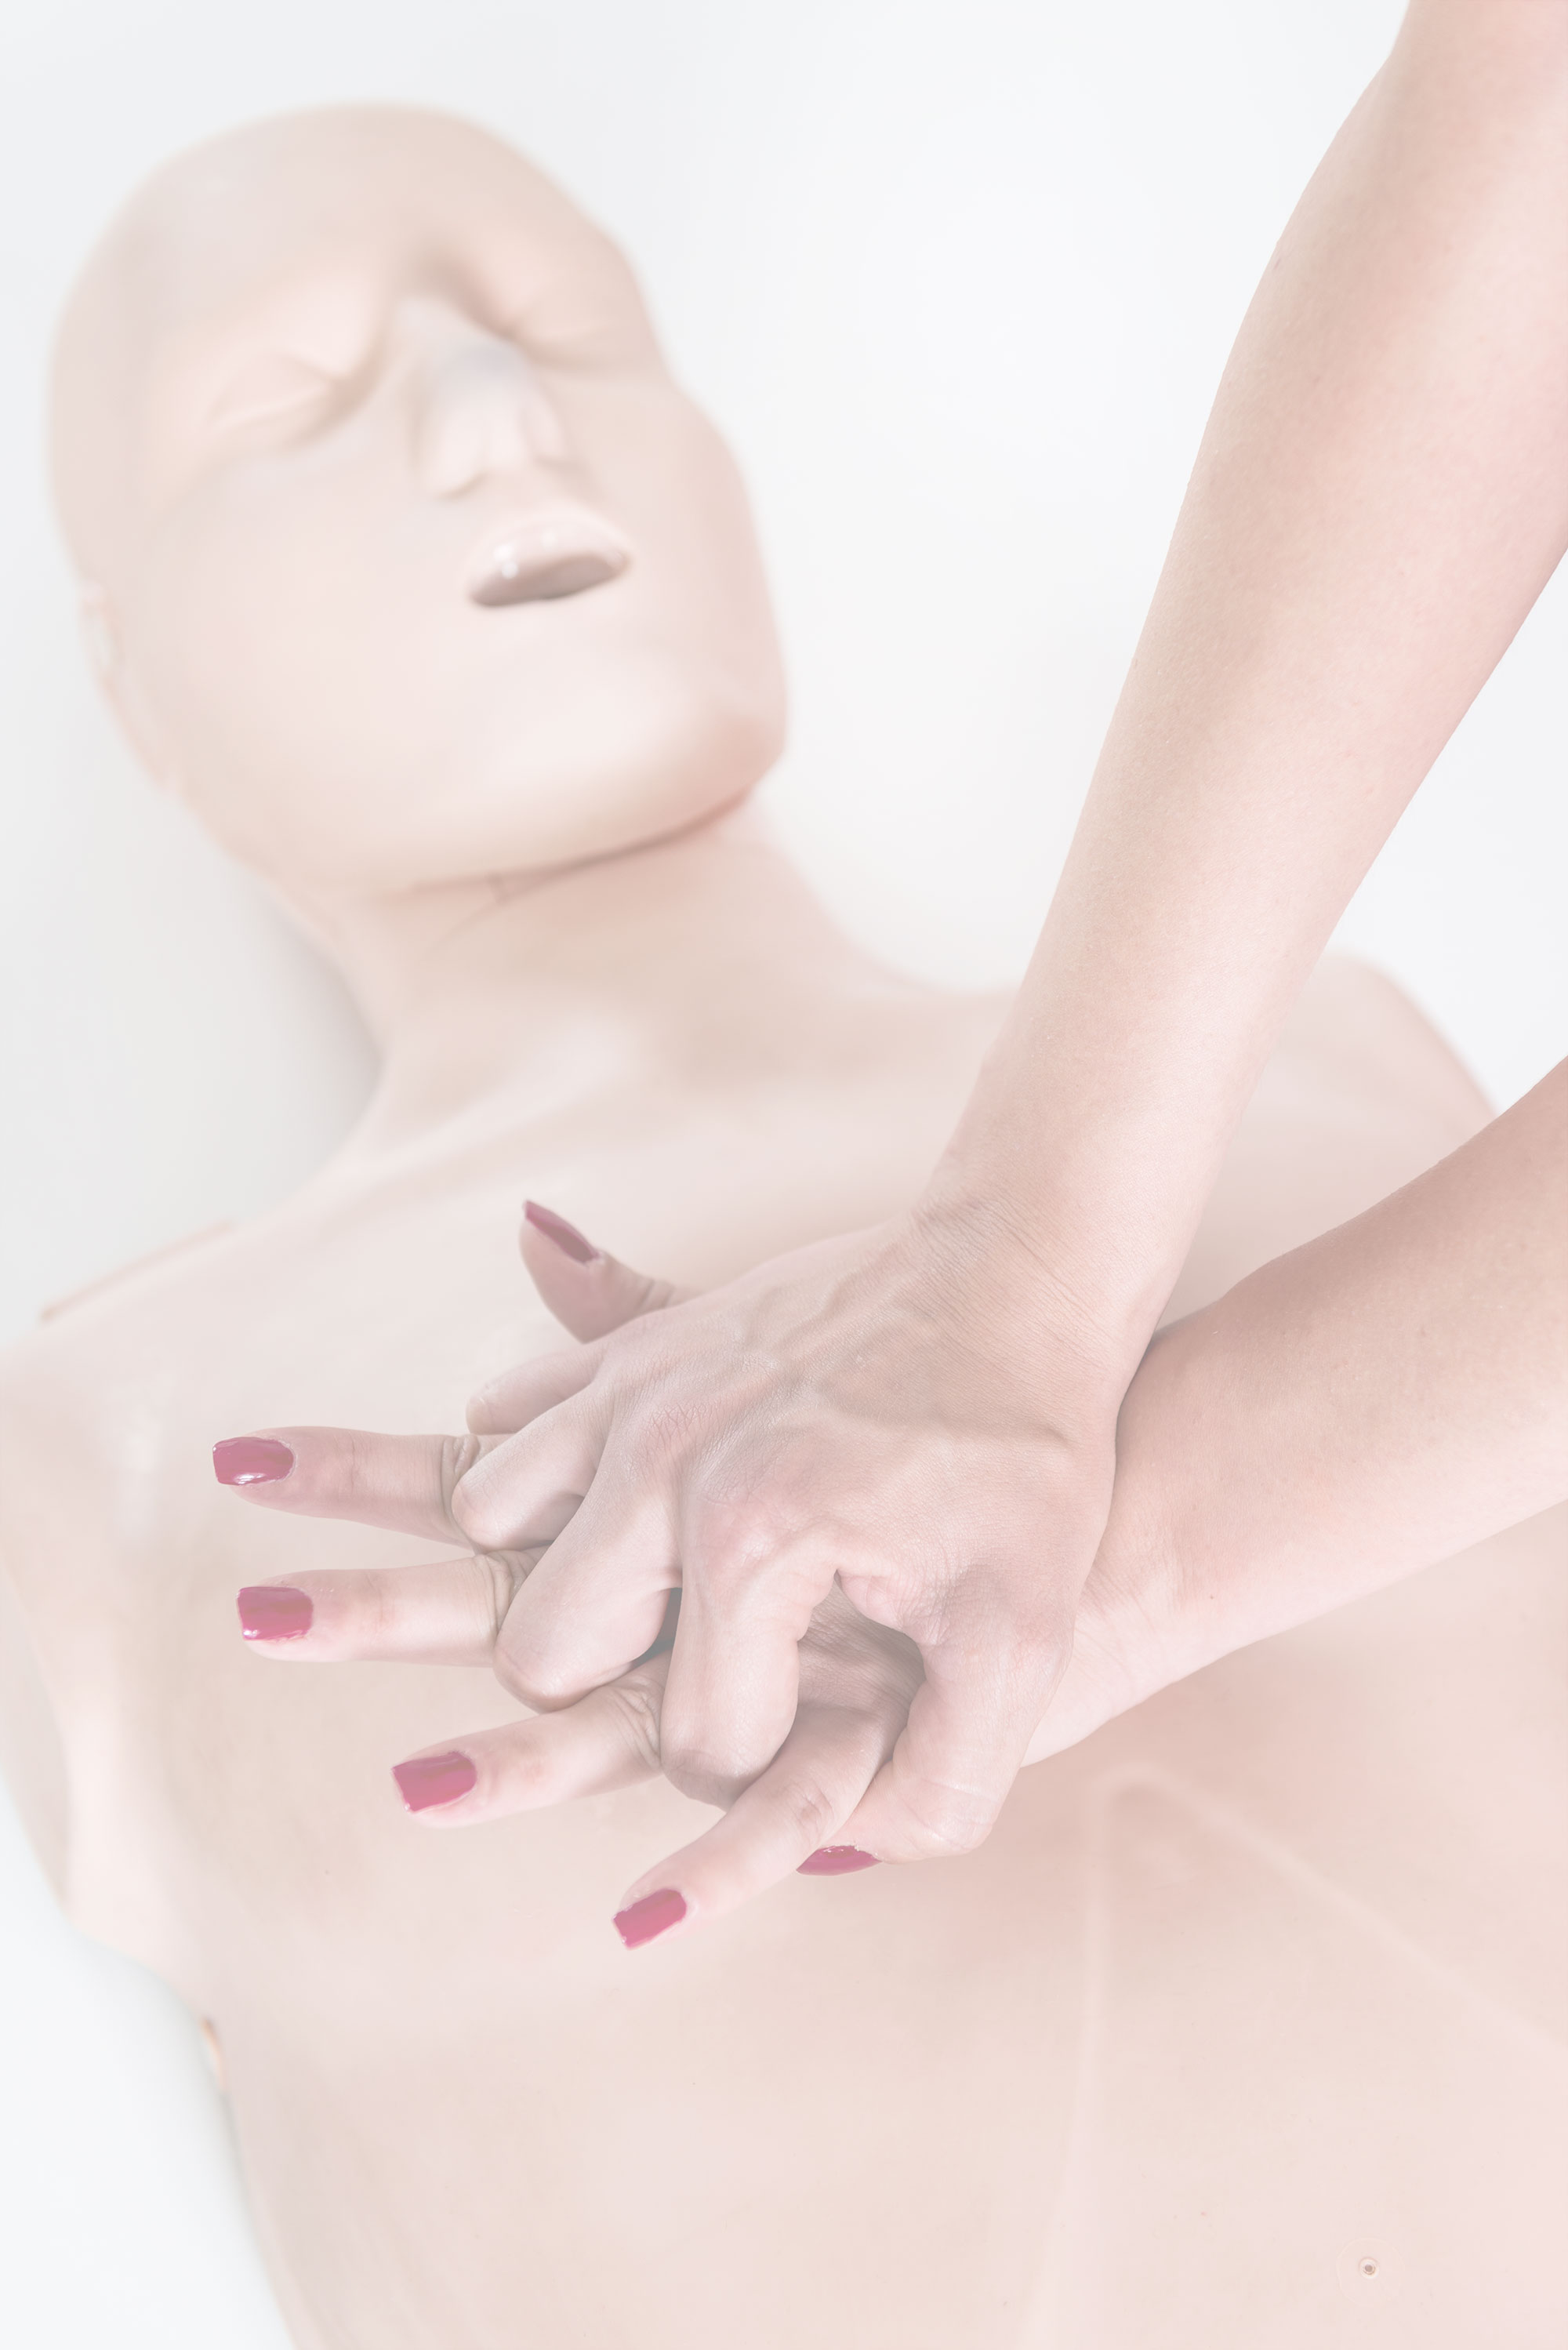 Woman performs CPR on an adult mannequin